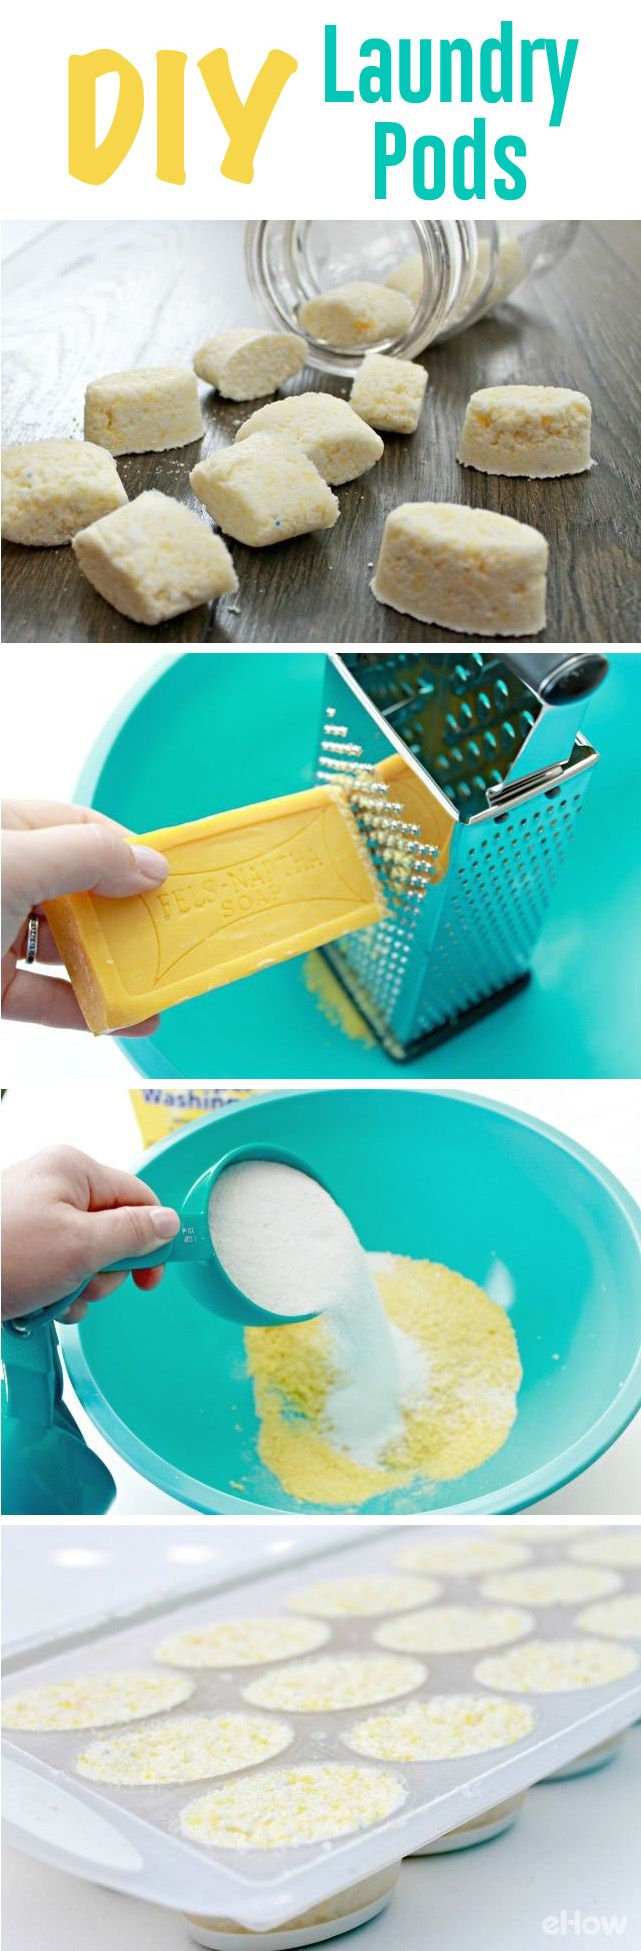 Save TONS of money by making your very own laundry detergent pods. It's so simple, you'll never think about buying again. DIY Instructions here: http://www.ehow.com/how_12342934_make-diy-laundry-pods.html?utm_source=pinterest.com&utm_medium=referral&utm_content=freestyle&utm_campaign=fanpage